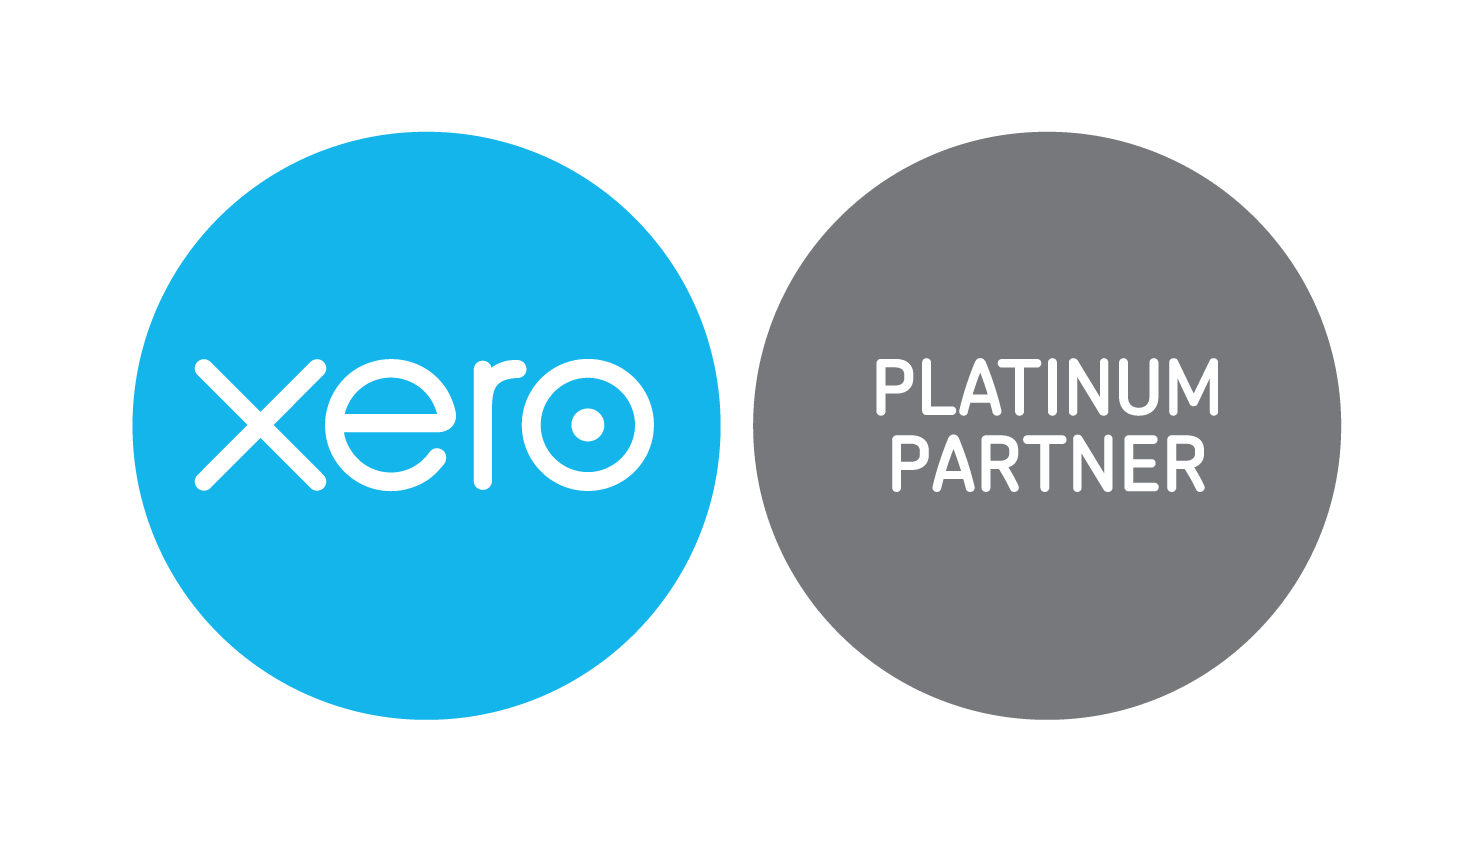 xero-platinum-partner-badge-RGB-compressed